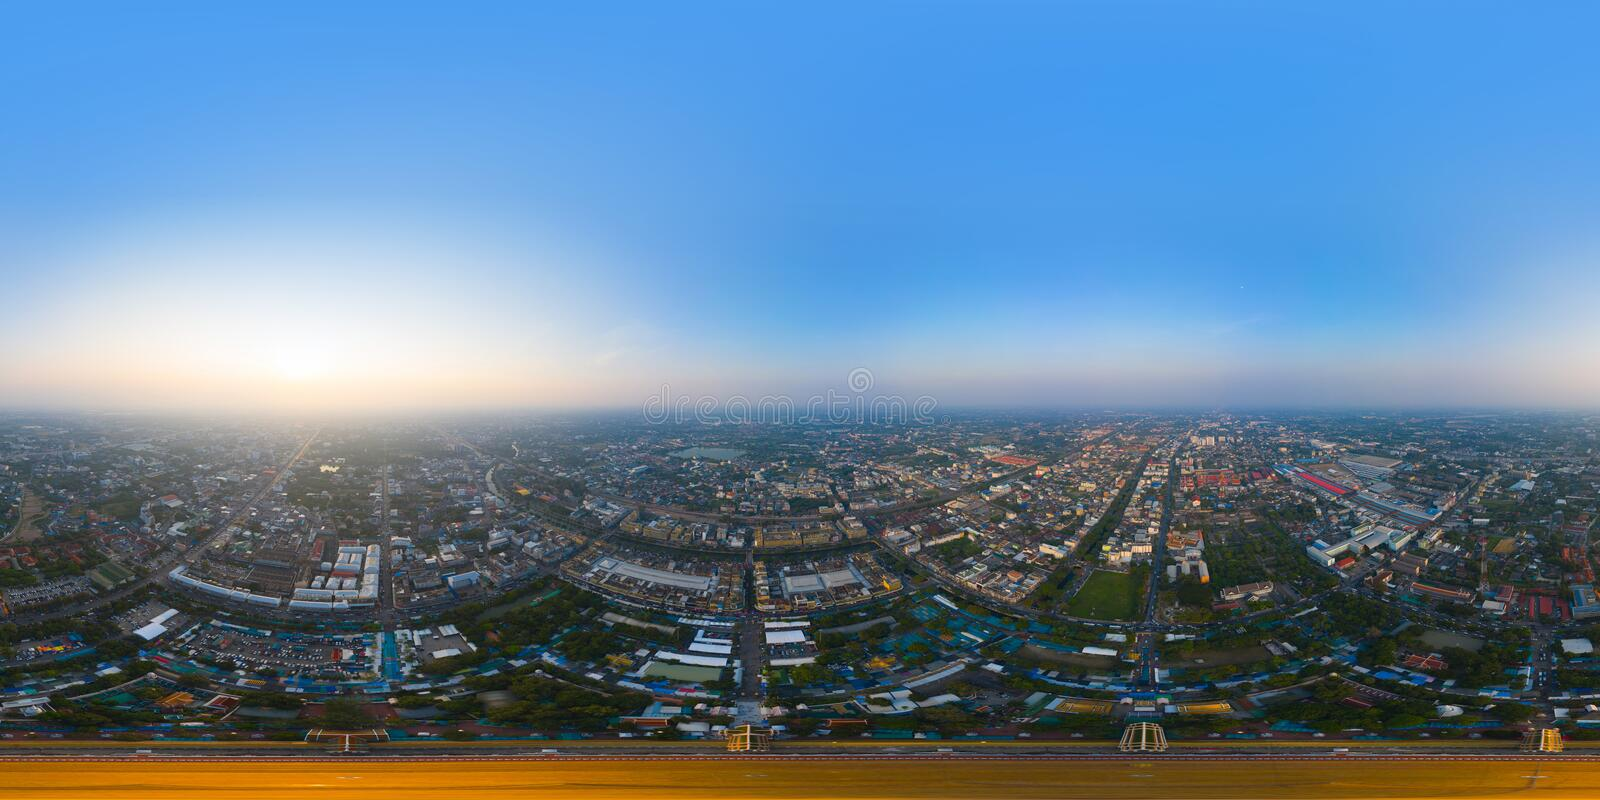 360 panorama by 180 degrees angle seamless panorama view of aerial top view of Phra Pathommachedi temple at sunset. The golden royalty free stock images